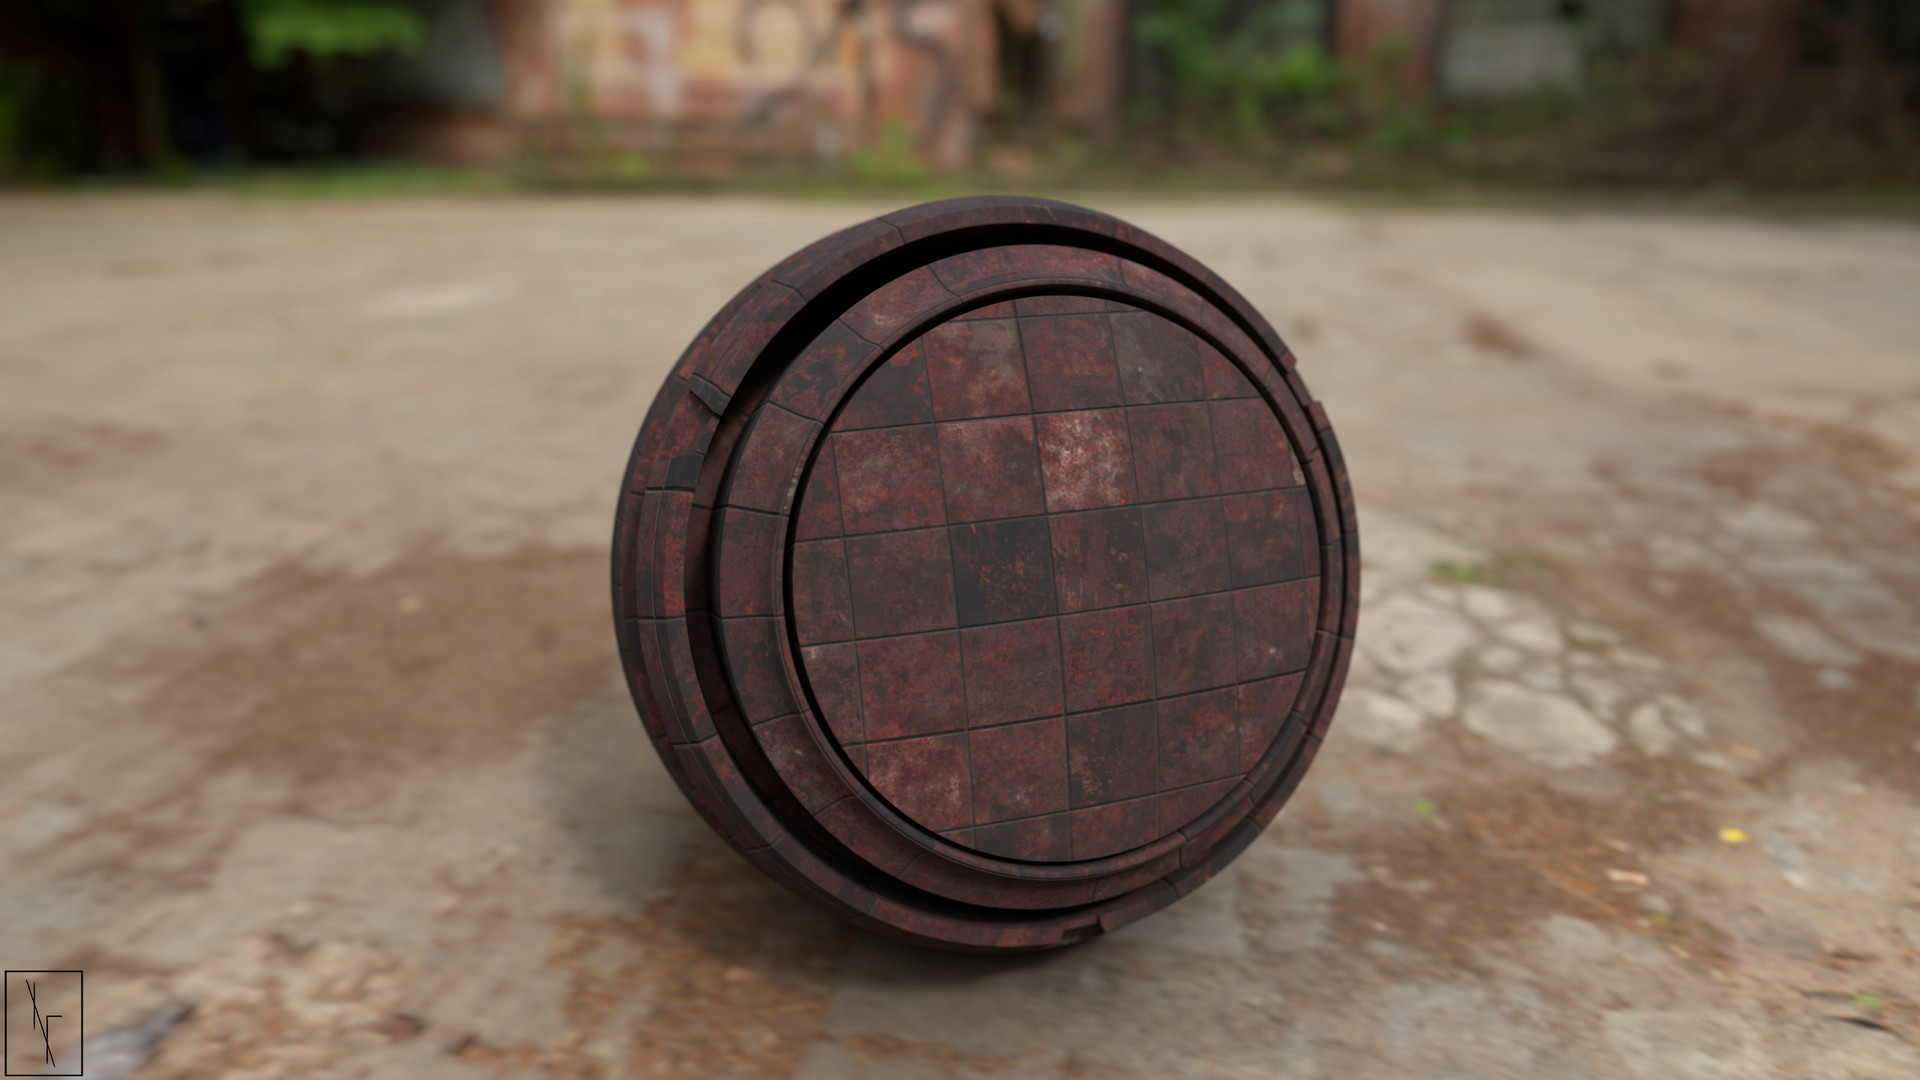 Niels fechtel bronze bathroom tiles rendermatsphere v1